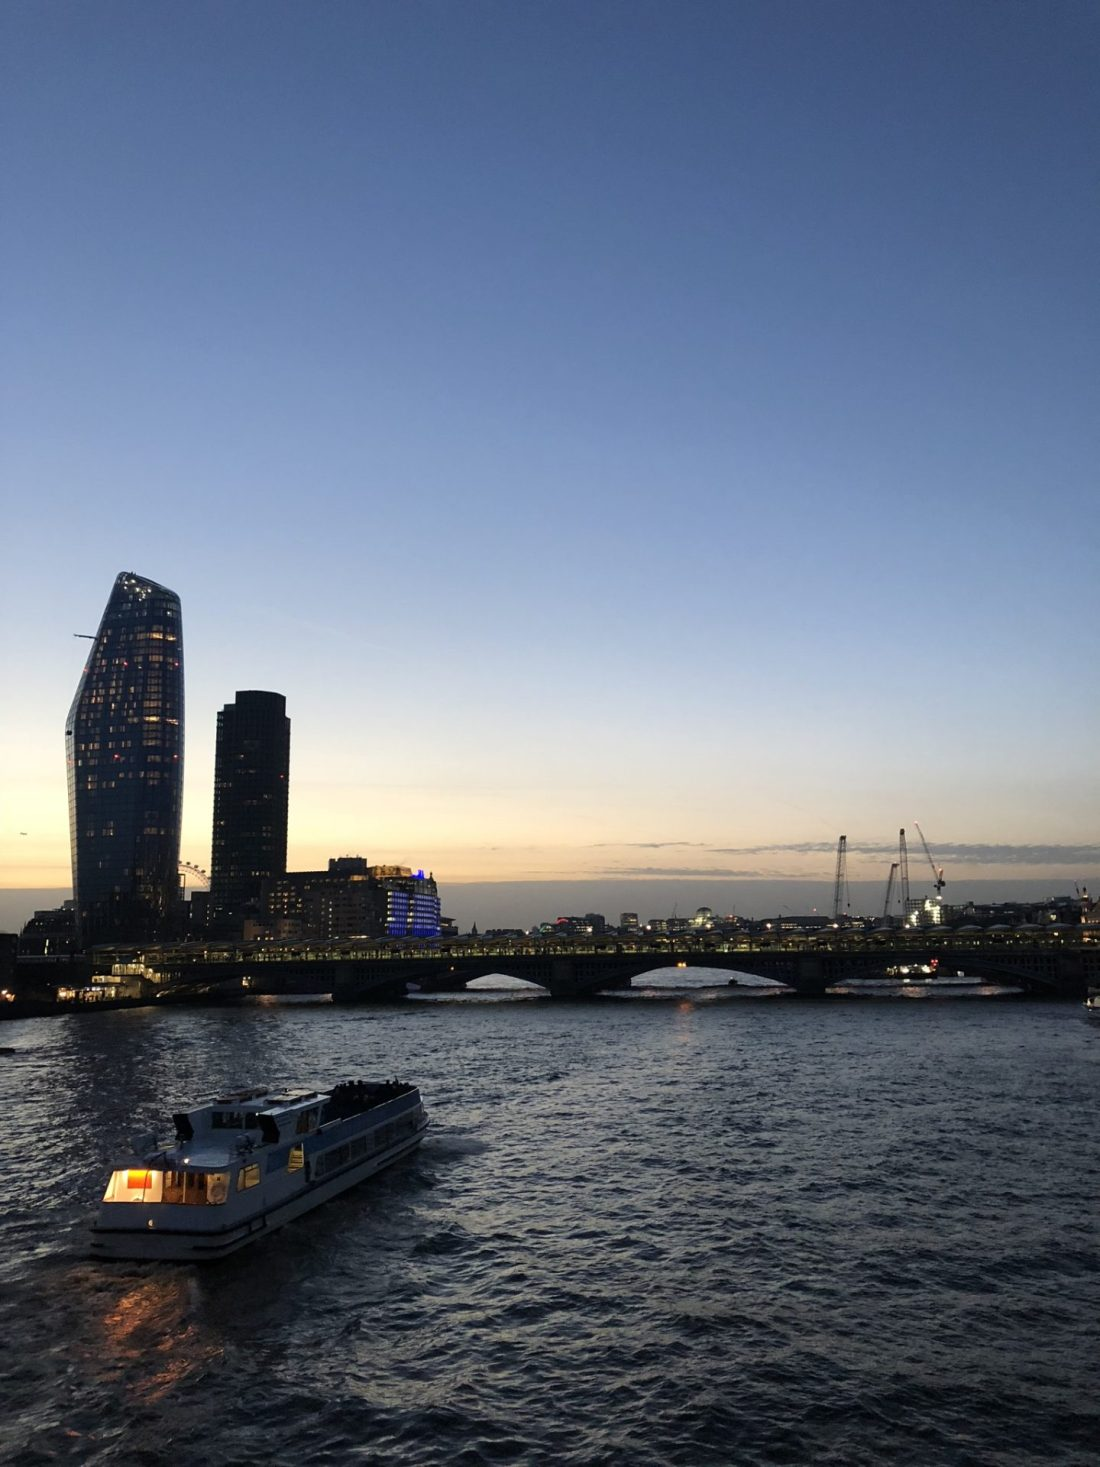 London skyline over the Thames